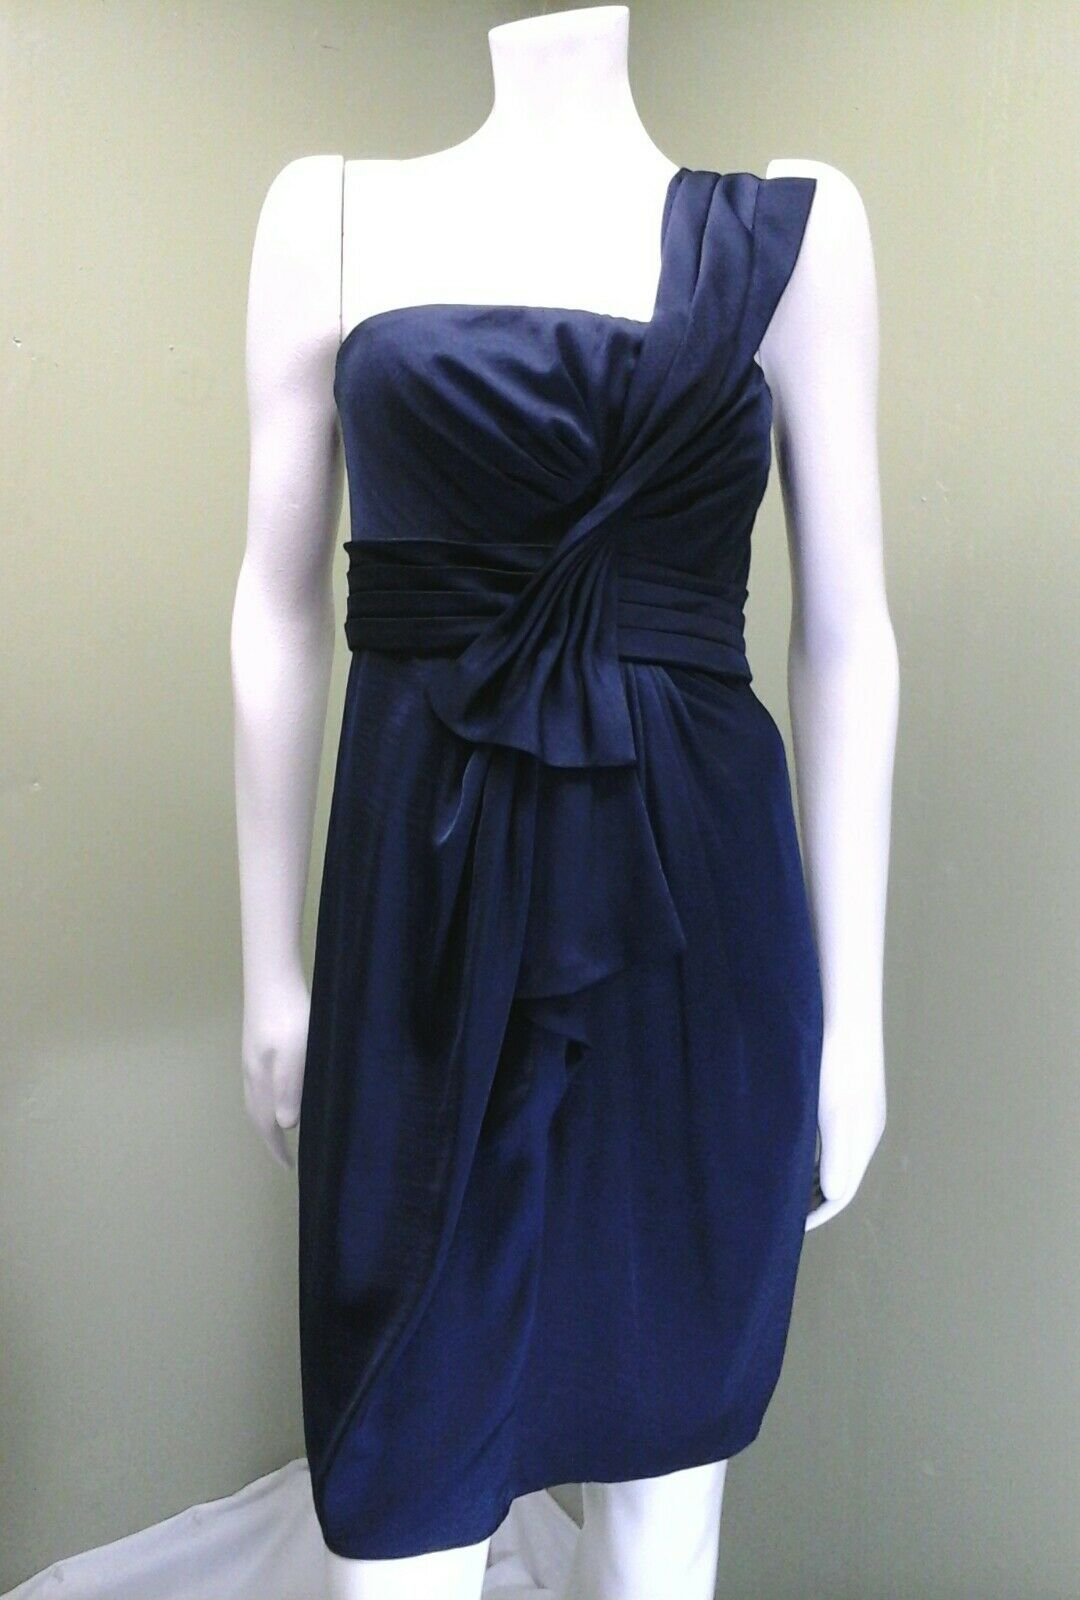 BCBG Max Azria One Shoulder Empire Waist Palais Navy bluee Sateen Dress Size 8